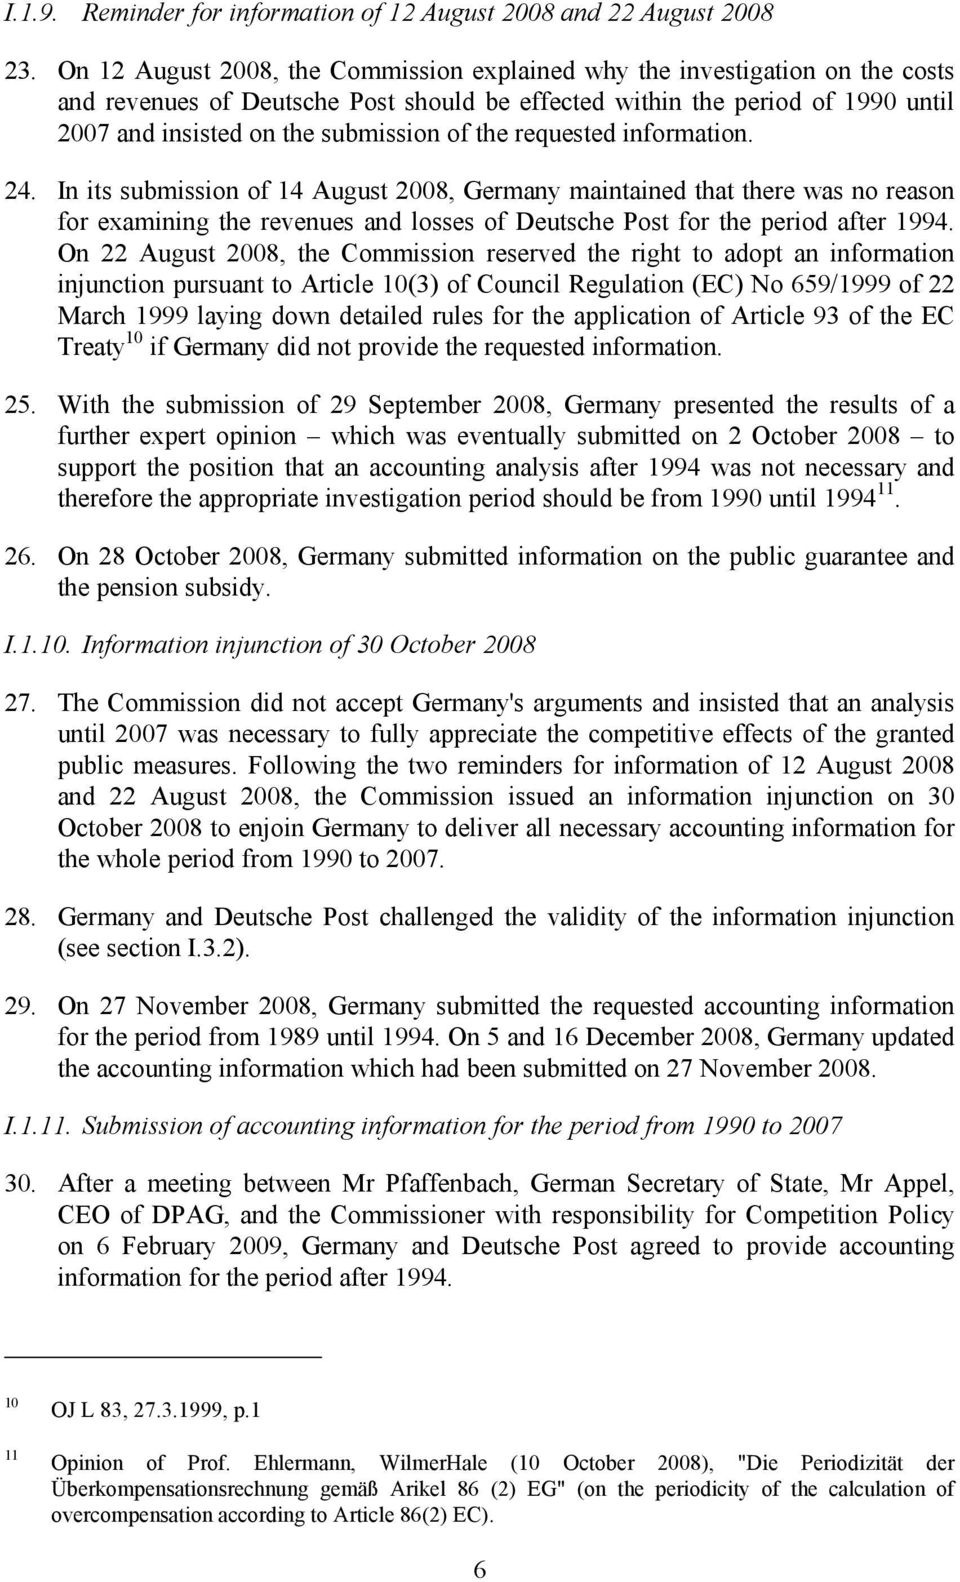 the requested information. 24. In its submission of 14 August 2008, Germany maintained that there was no reason for examining the revenues and losses of Deutsche Post for the period after 1994.